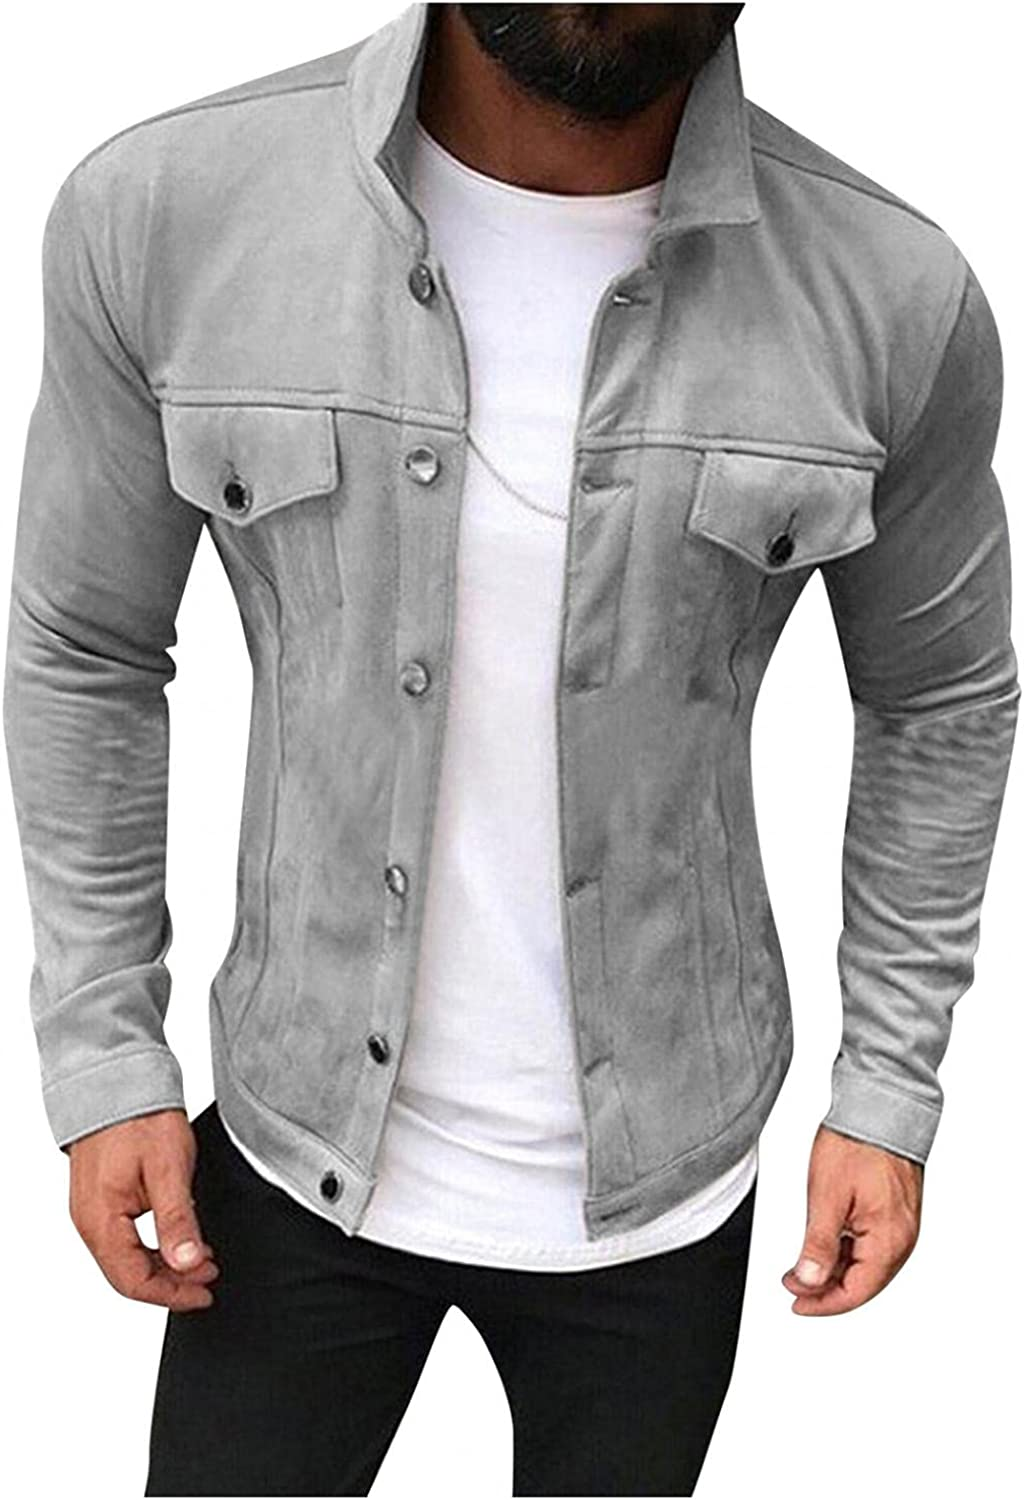 Huangse Men's Autumn And Winter Jackets Military Cargo Bomber Working Jackets with Multi Pockets Warm Coats